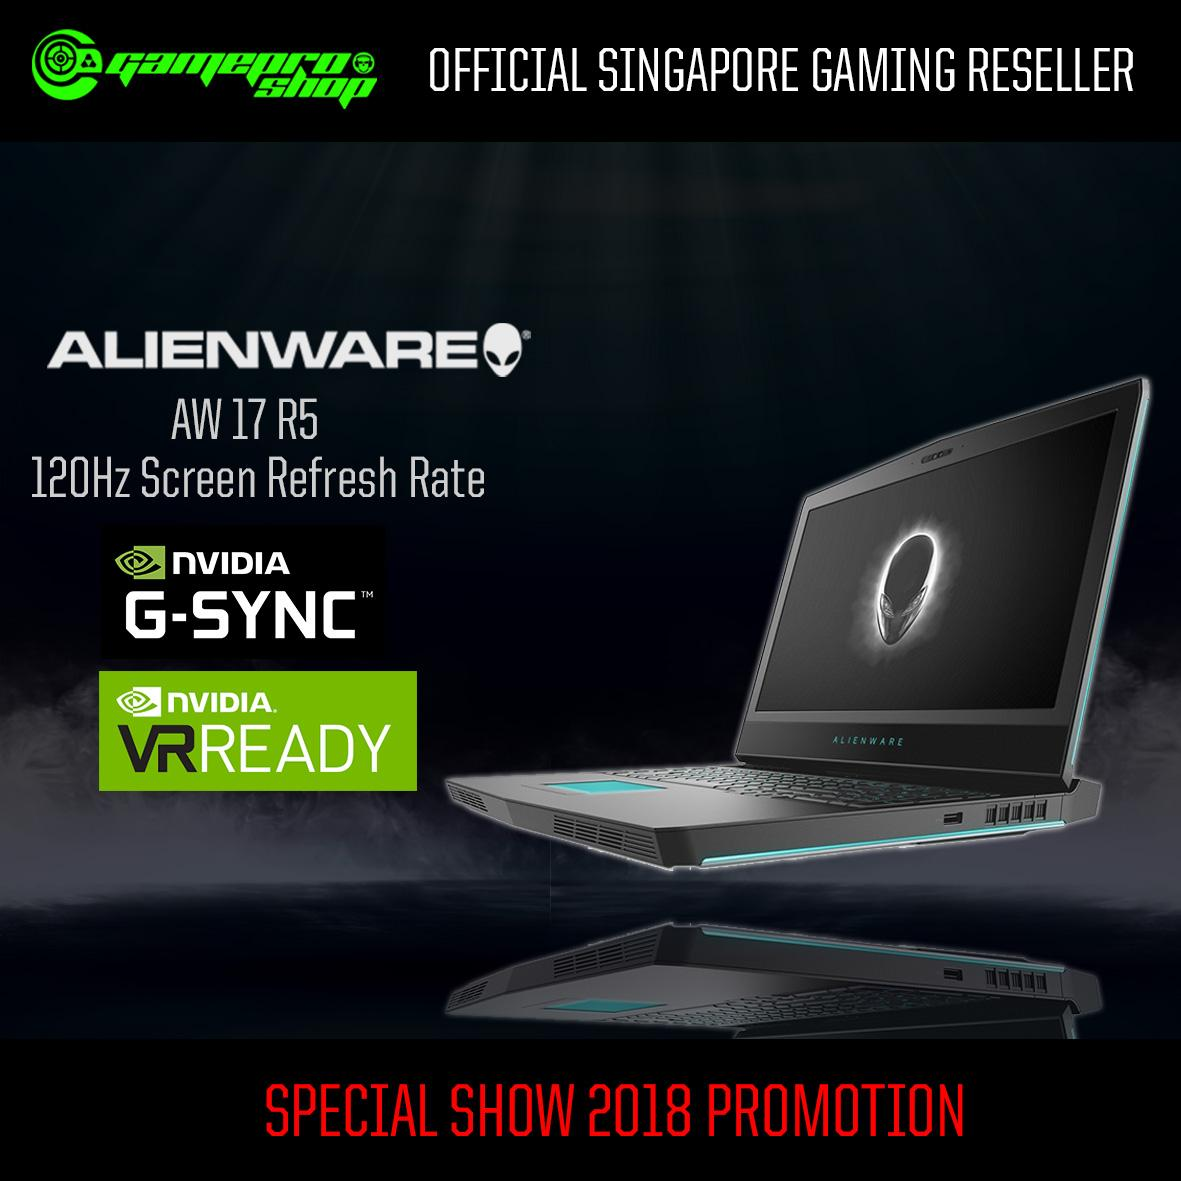 Alienware AW17 R5 -875Q118G-W10-1070 (i7-8750H/ 16GB/ 256GB SSD +1TB/ NVIDIA GTX 1070/ 17.3″ QHD/ Win 10) with 120Hz *END OF MONTH PROMO*